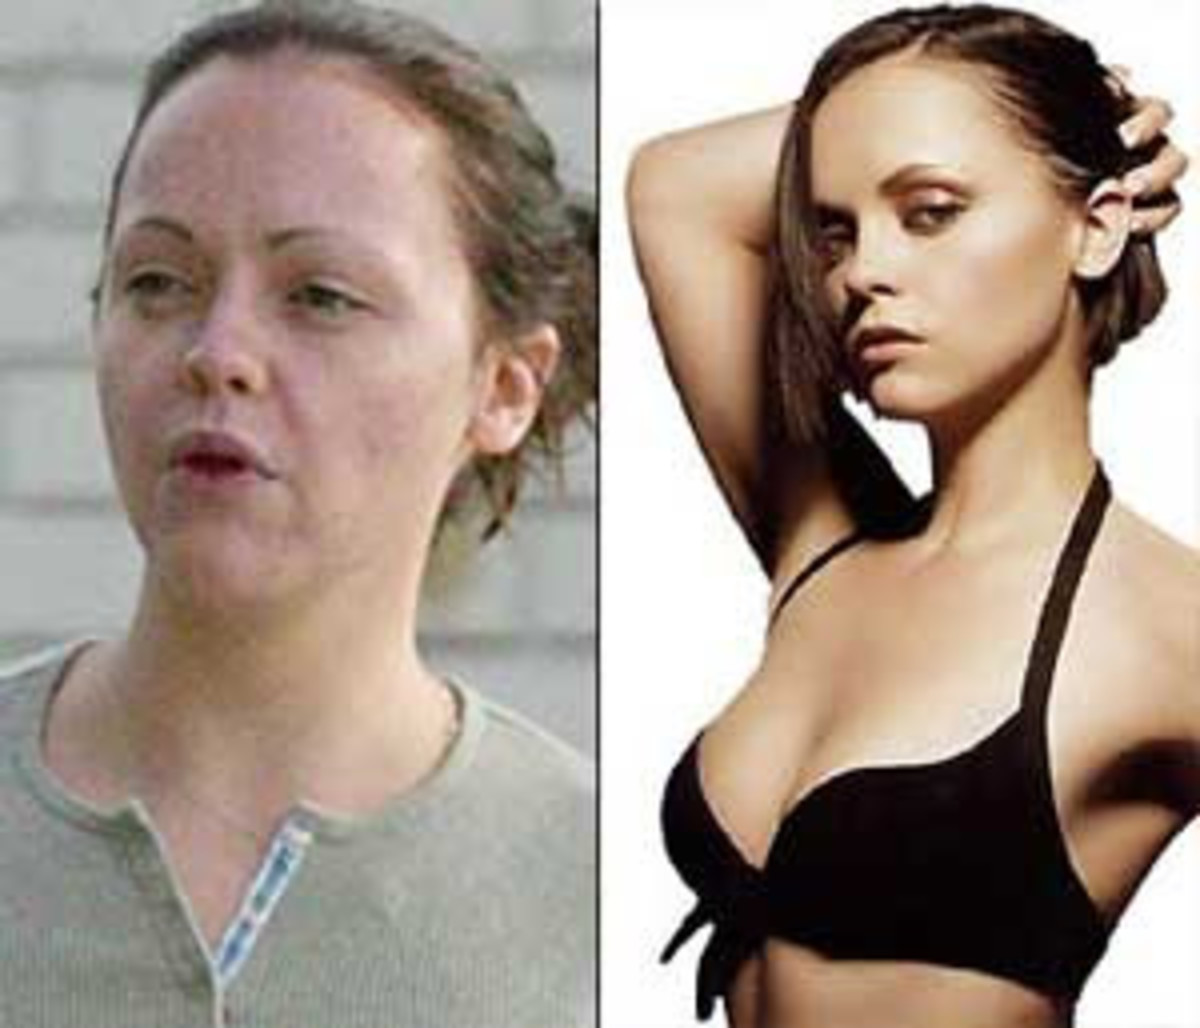 Christina Ricci is puffy and washed out without make-up on.  She looks like an everyday Joe and that's great!